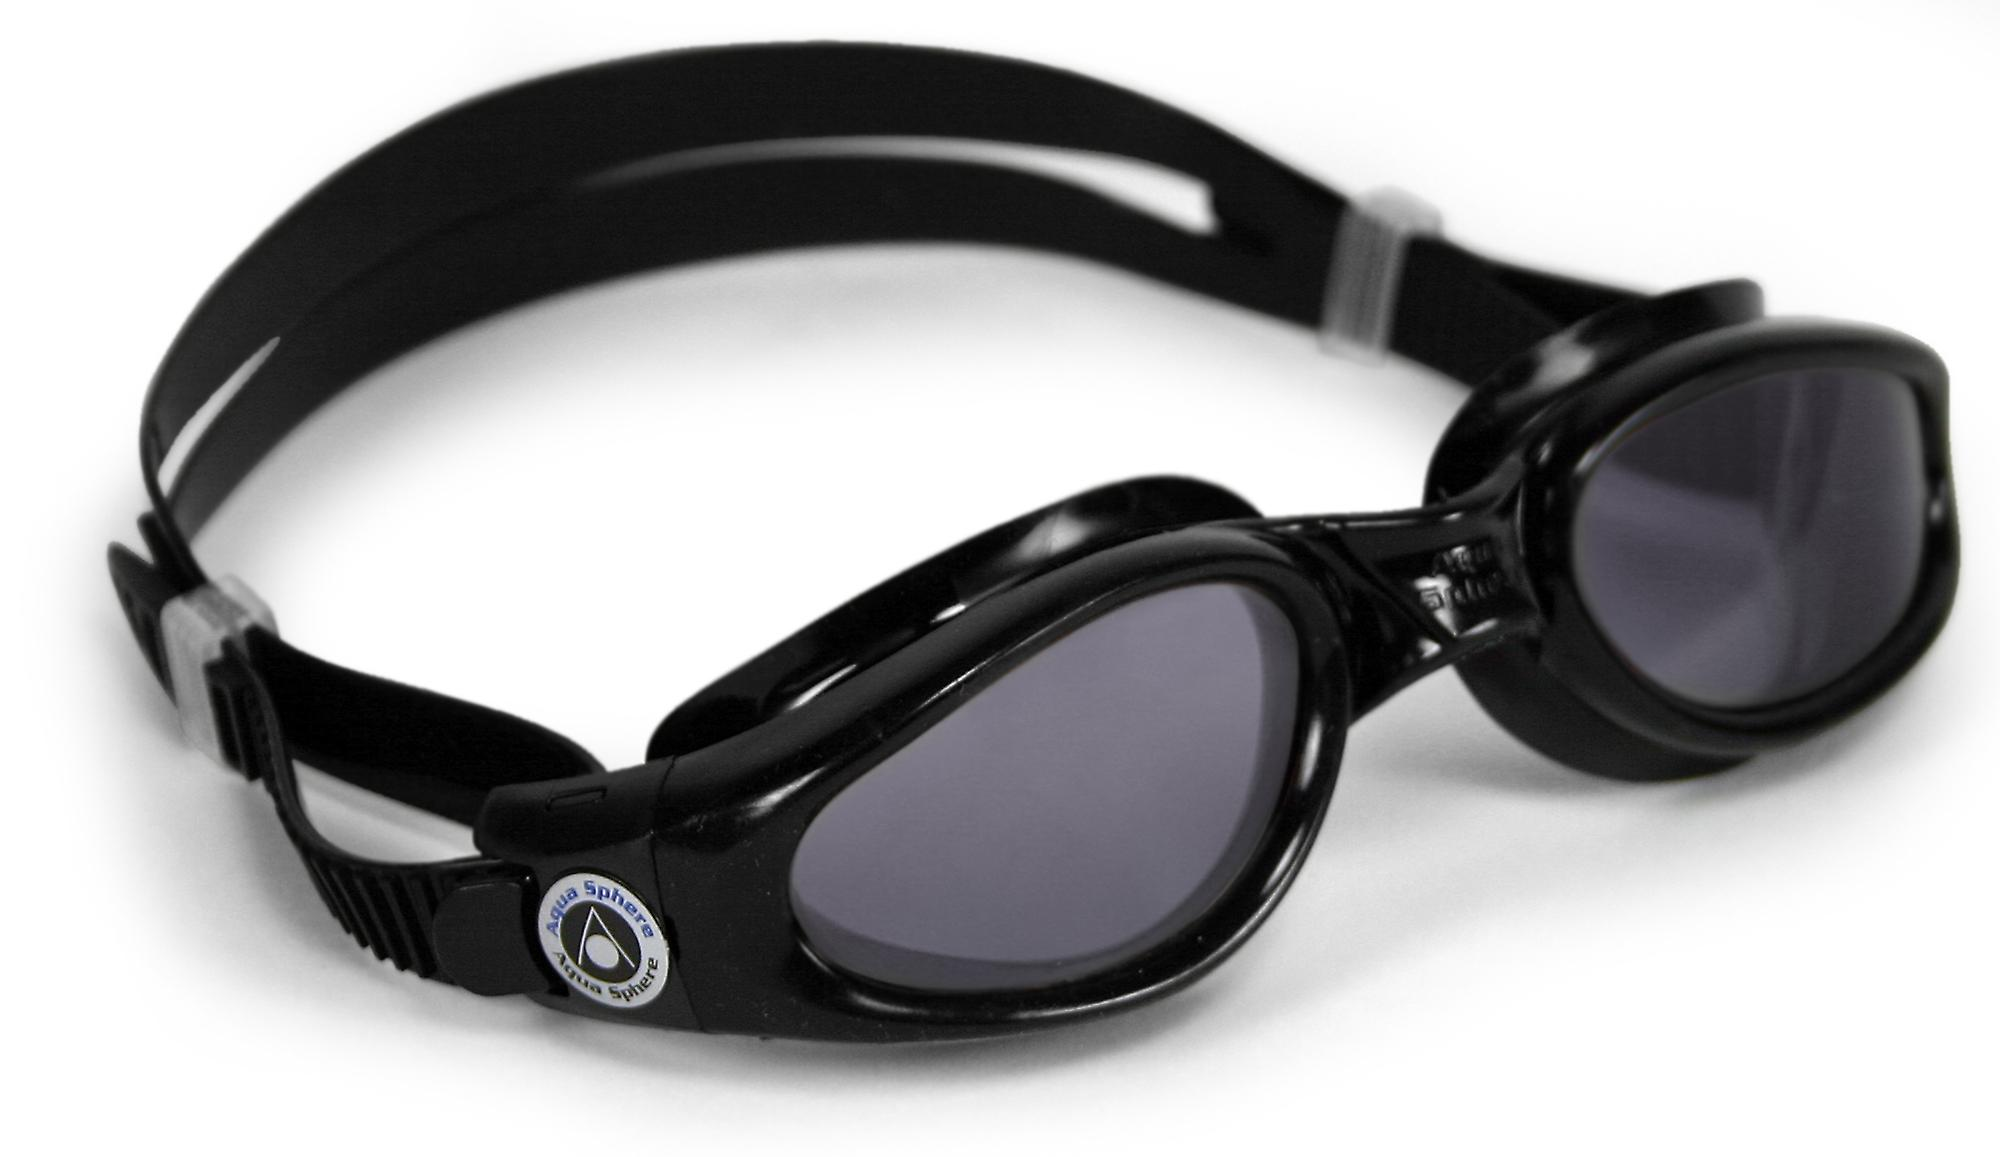 Aqua Sphere Kaiman Swimming Goggle - Smoke Lenses - Black